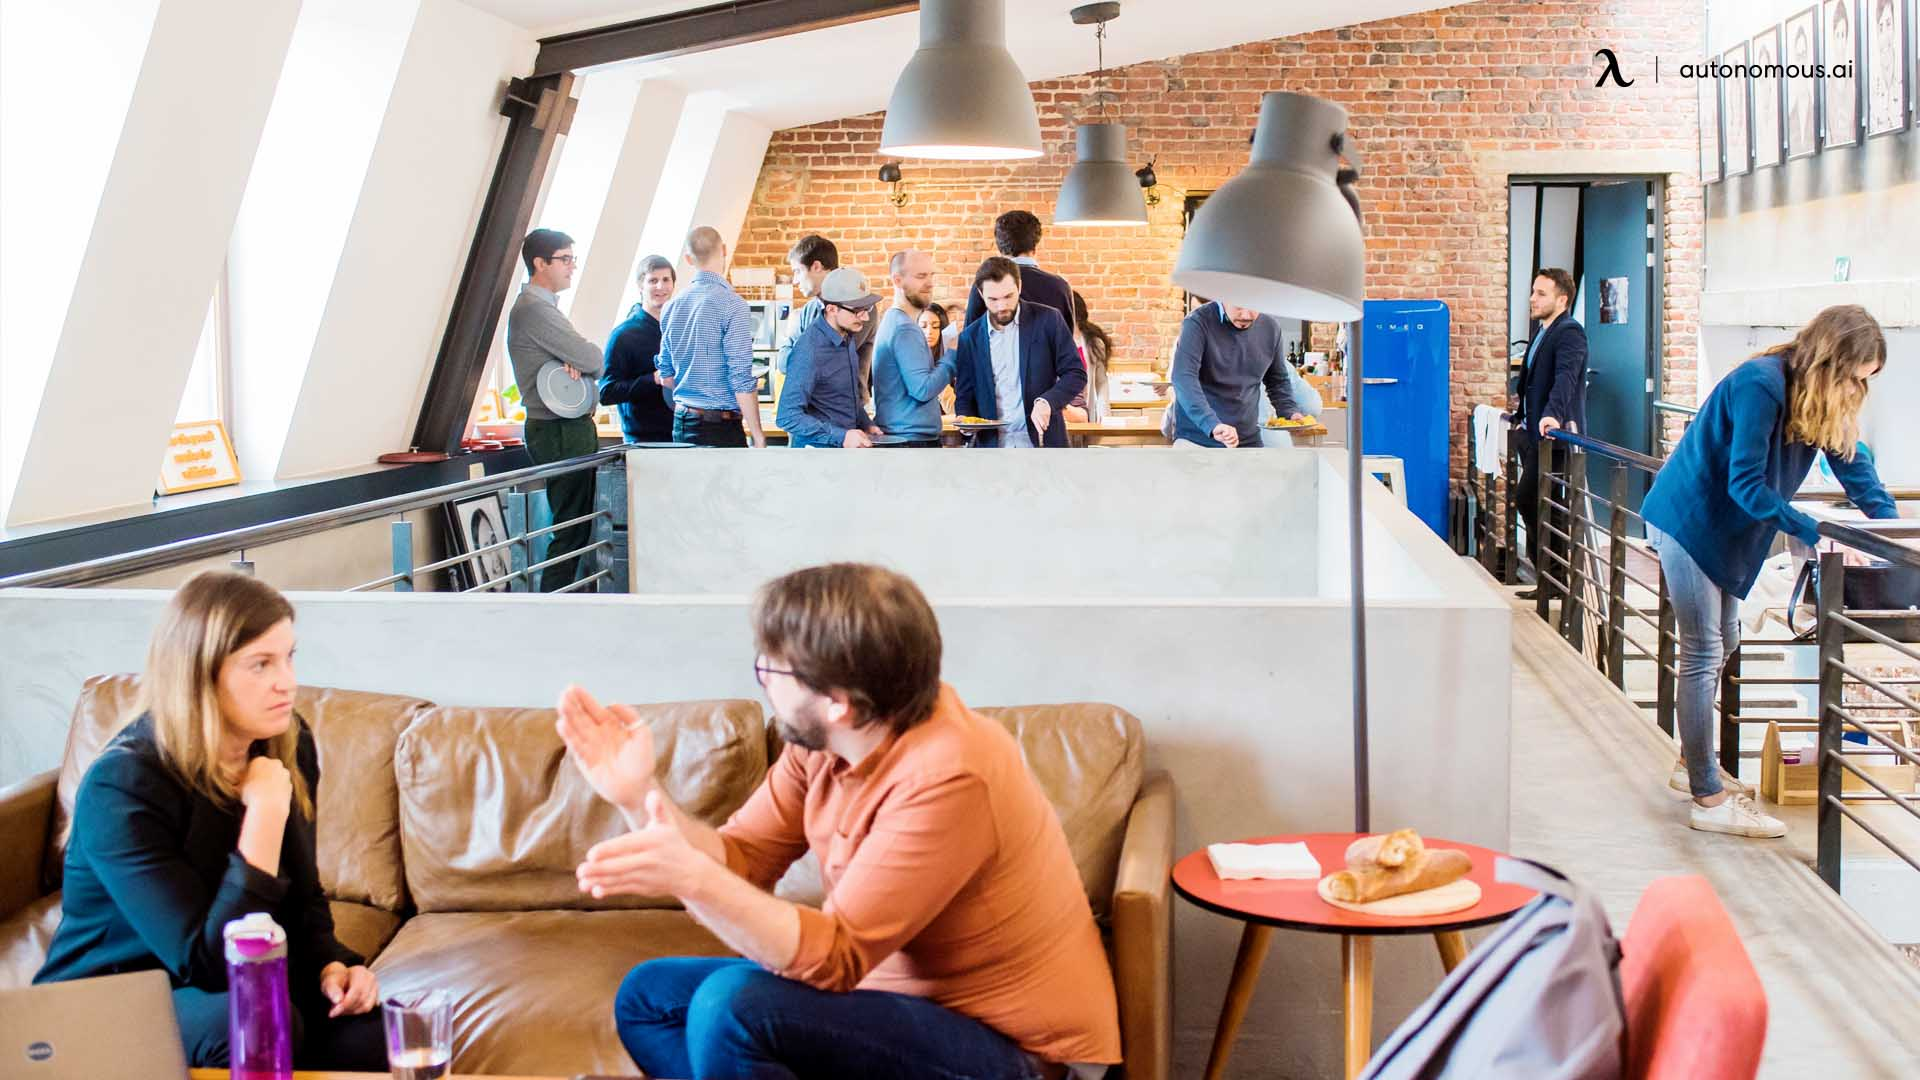 Difference between Shared Workspace and Co-Working Space